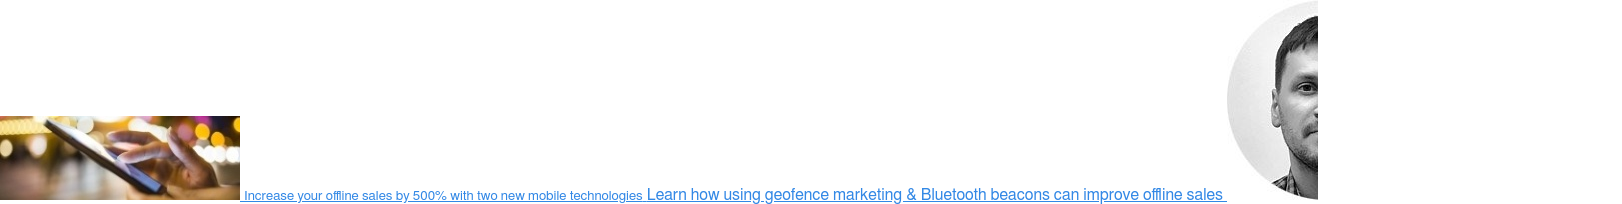 Increase your offline sales by 500% with two new mobile technologies Learn how  using geofence marketing & Bluetooth beacons can improve offline sales  by  Nikolay Khokhlienkov